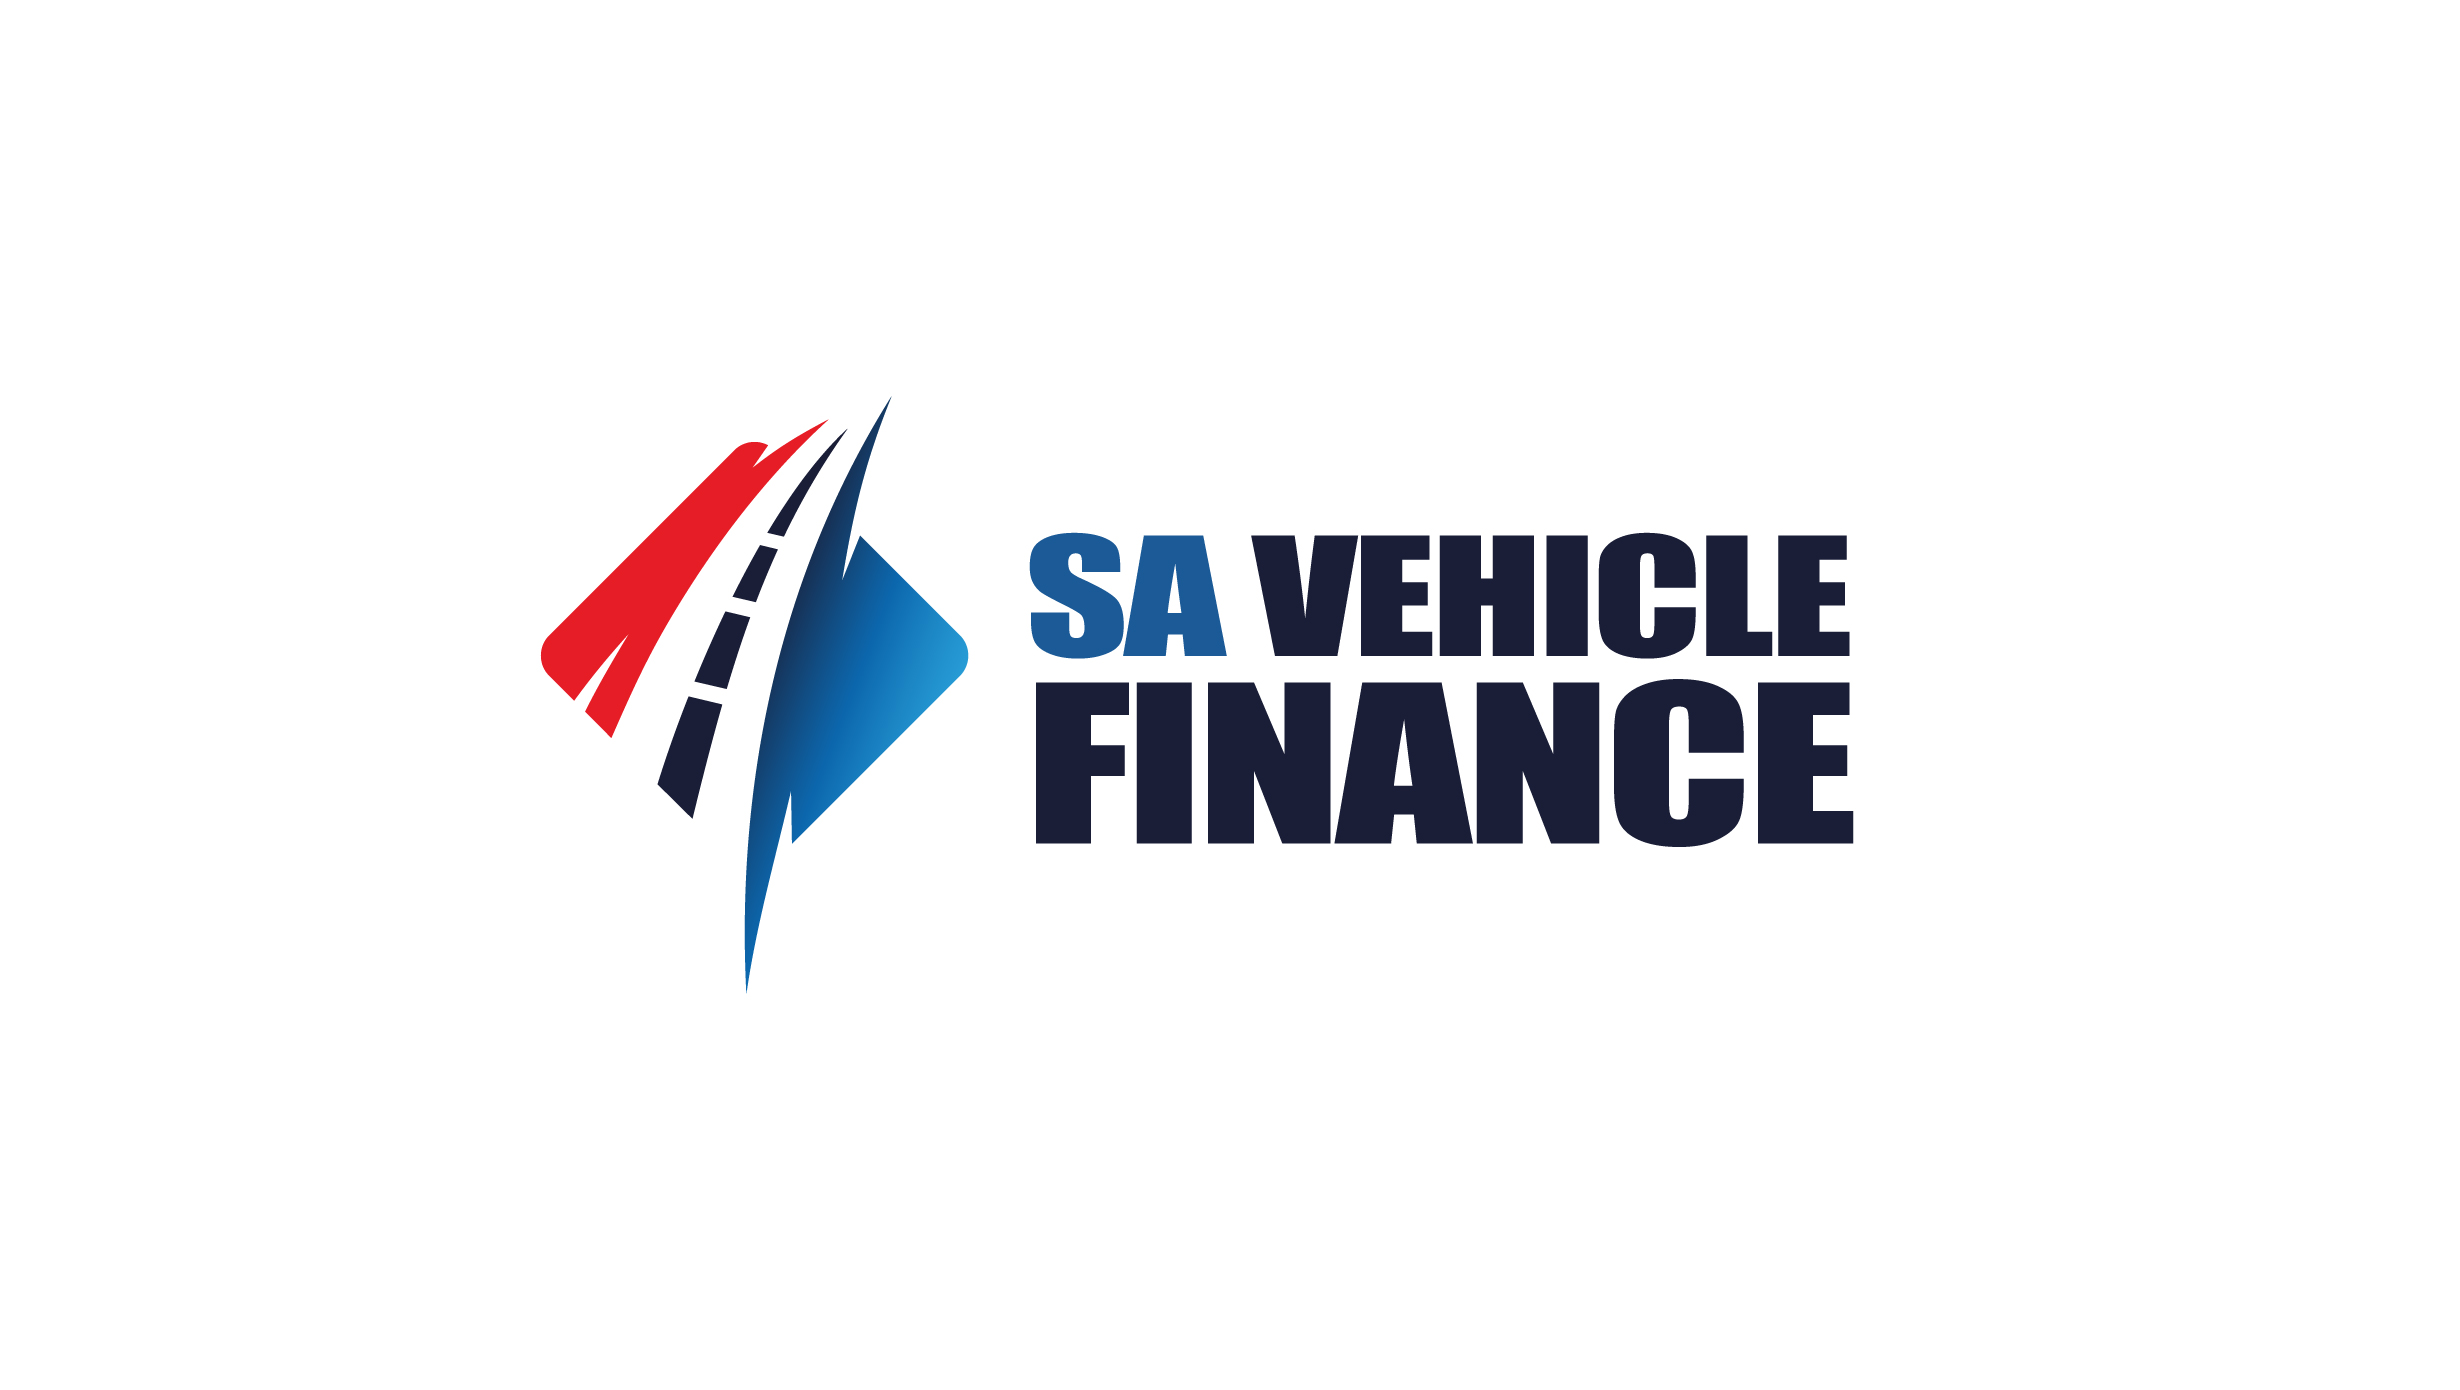 SA Vehicle Finance Logo Design